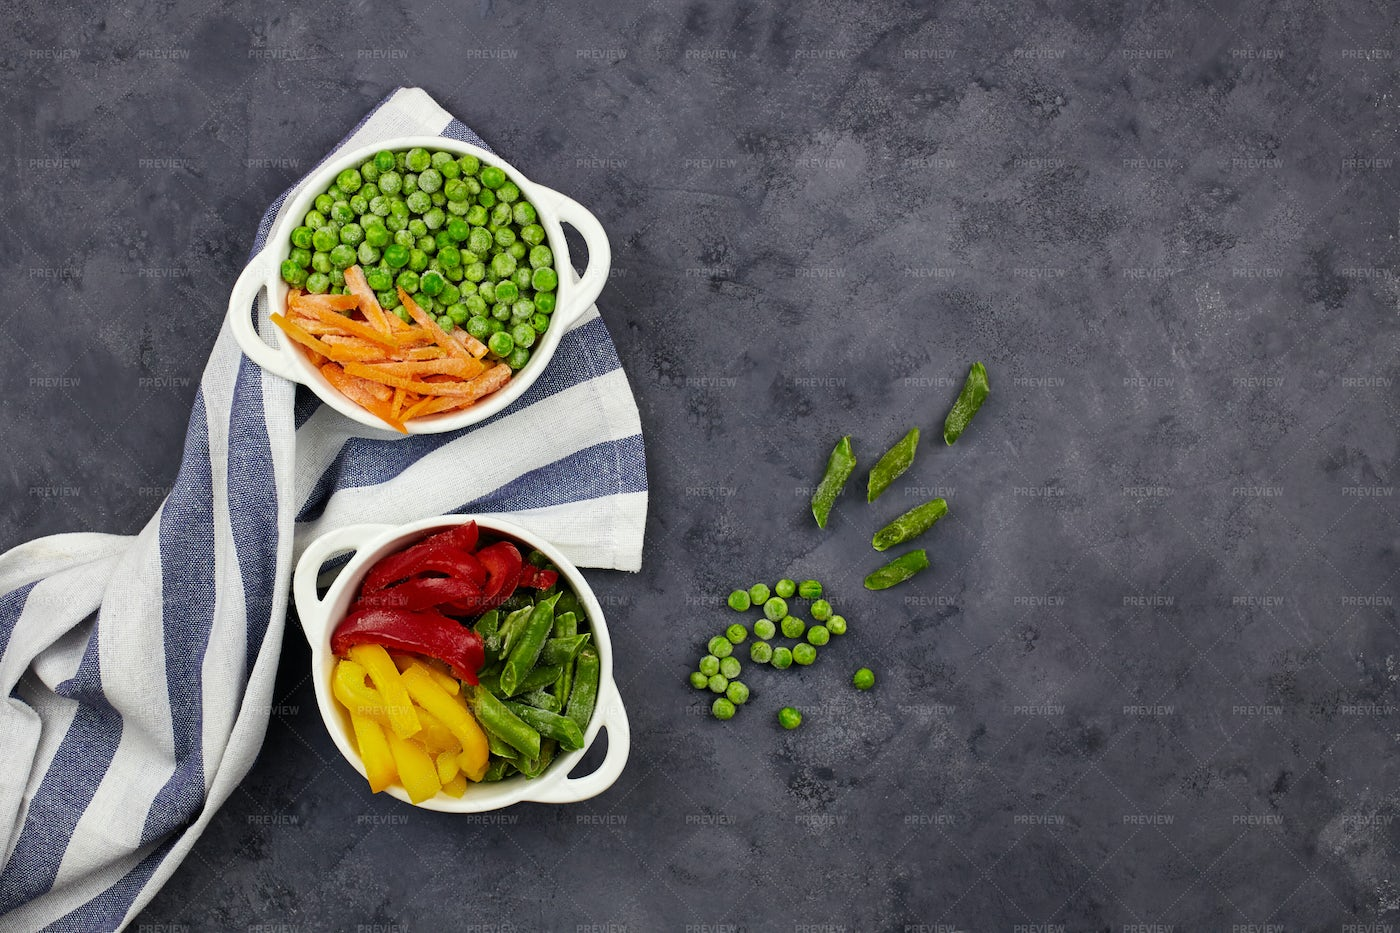 Tasty Vegetables In Bowls: Stock Photos